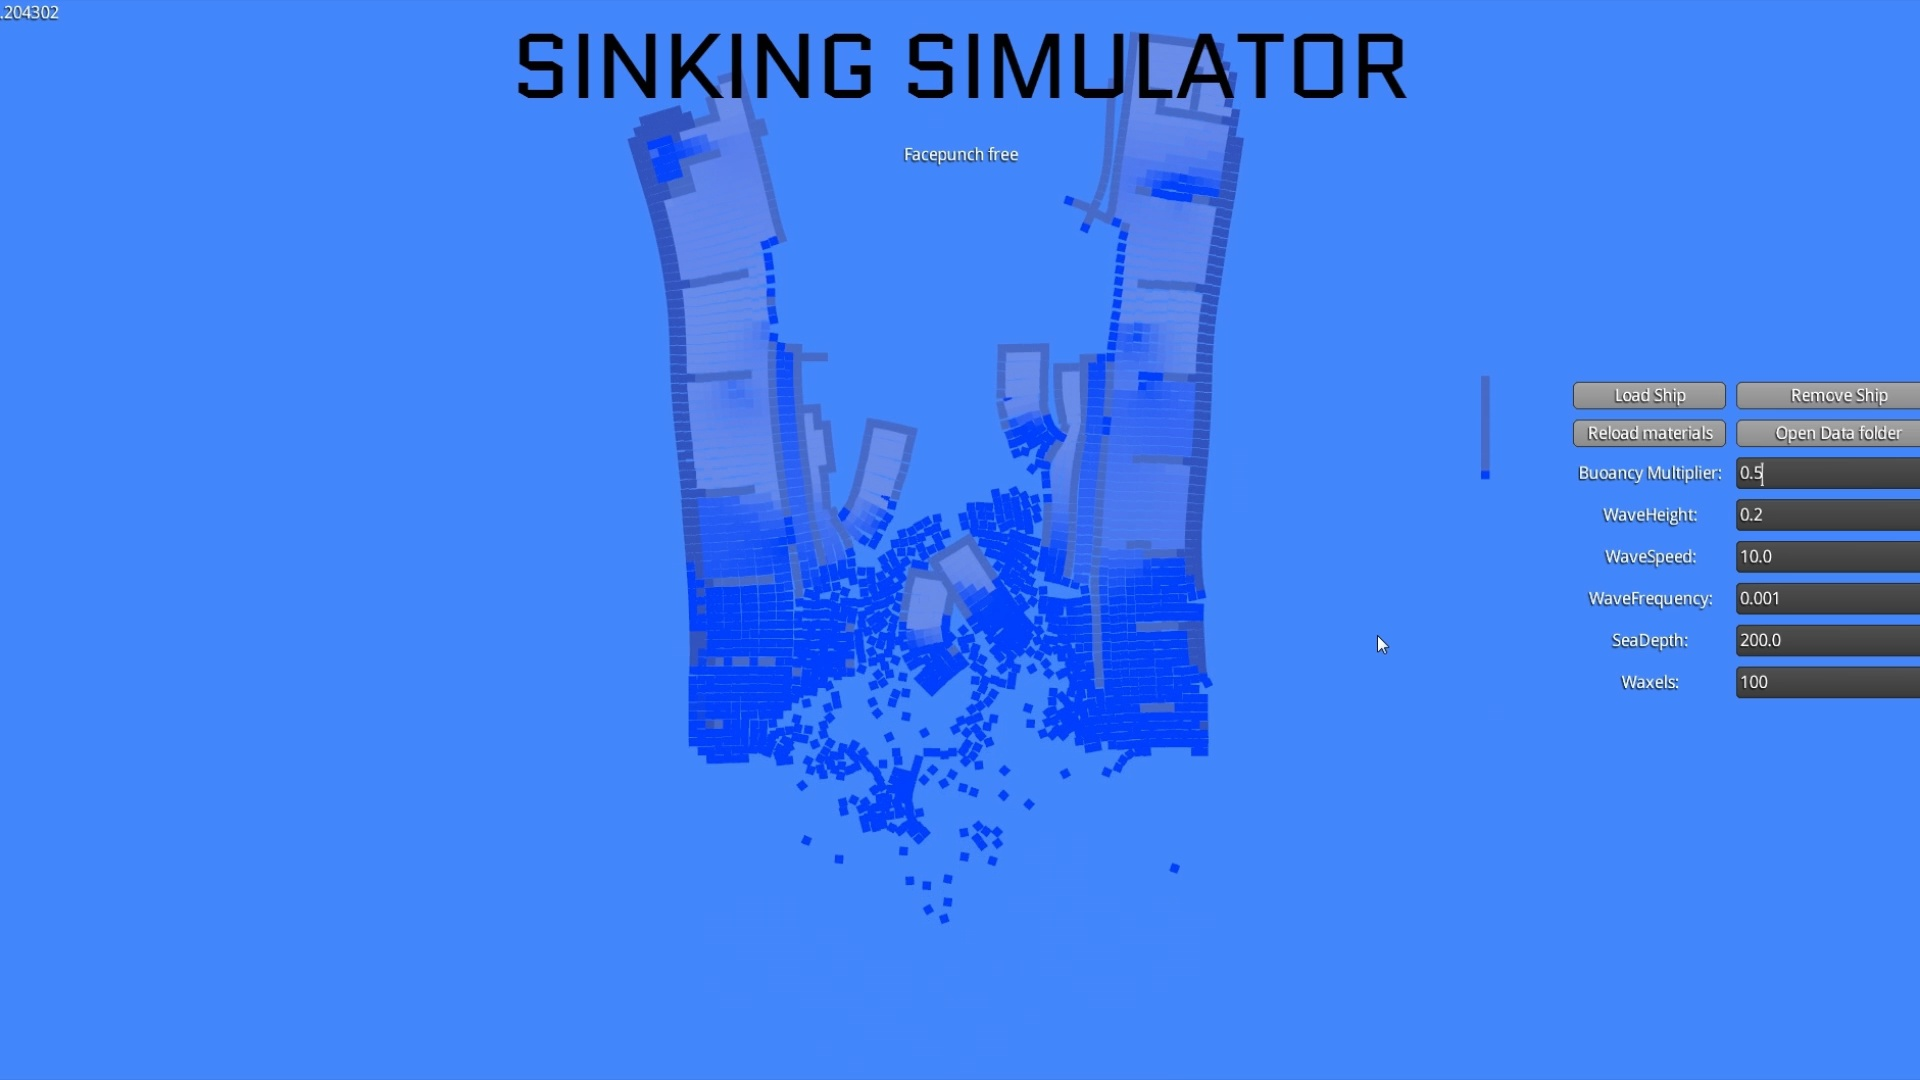 Sinking Simulator 2 Prealpha 1 0 4 file - Indie DB